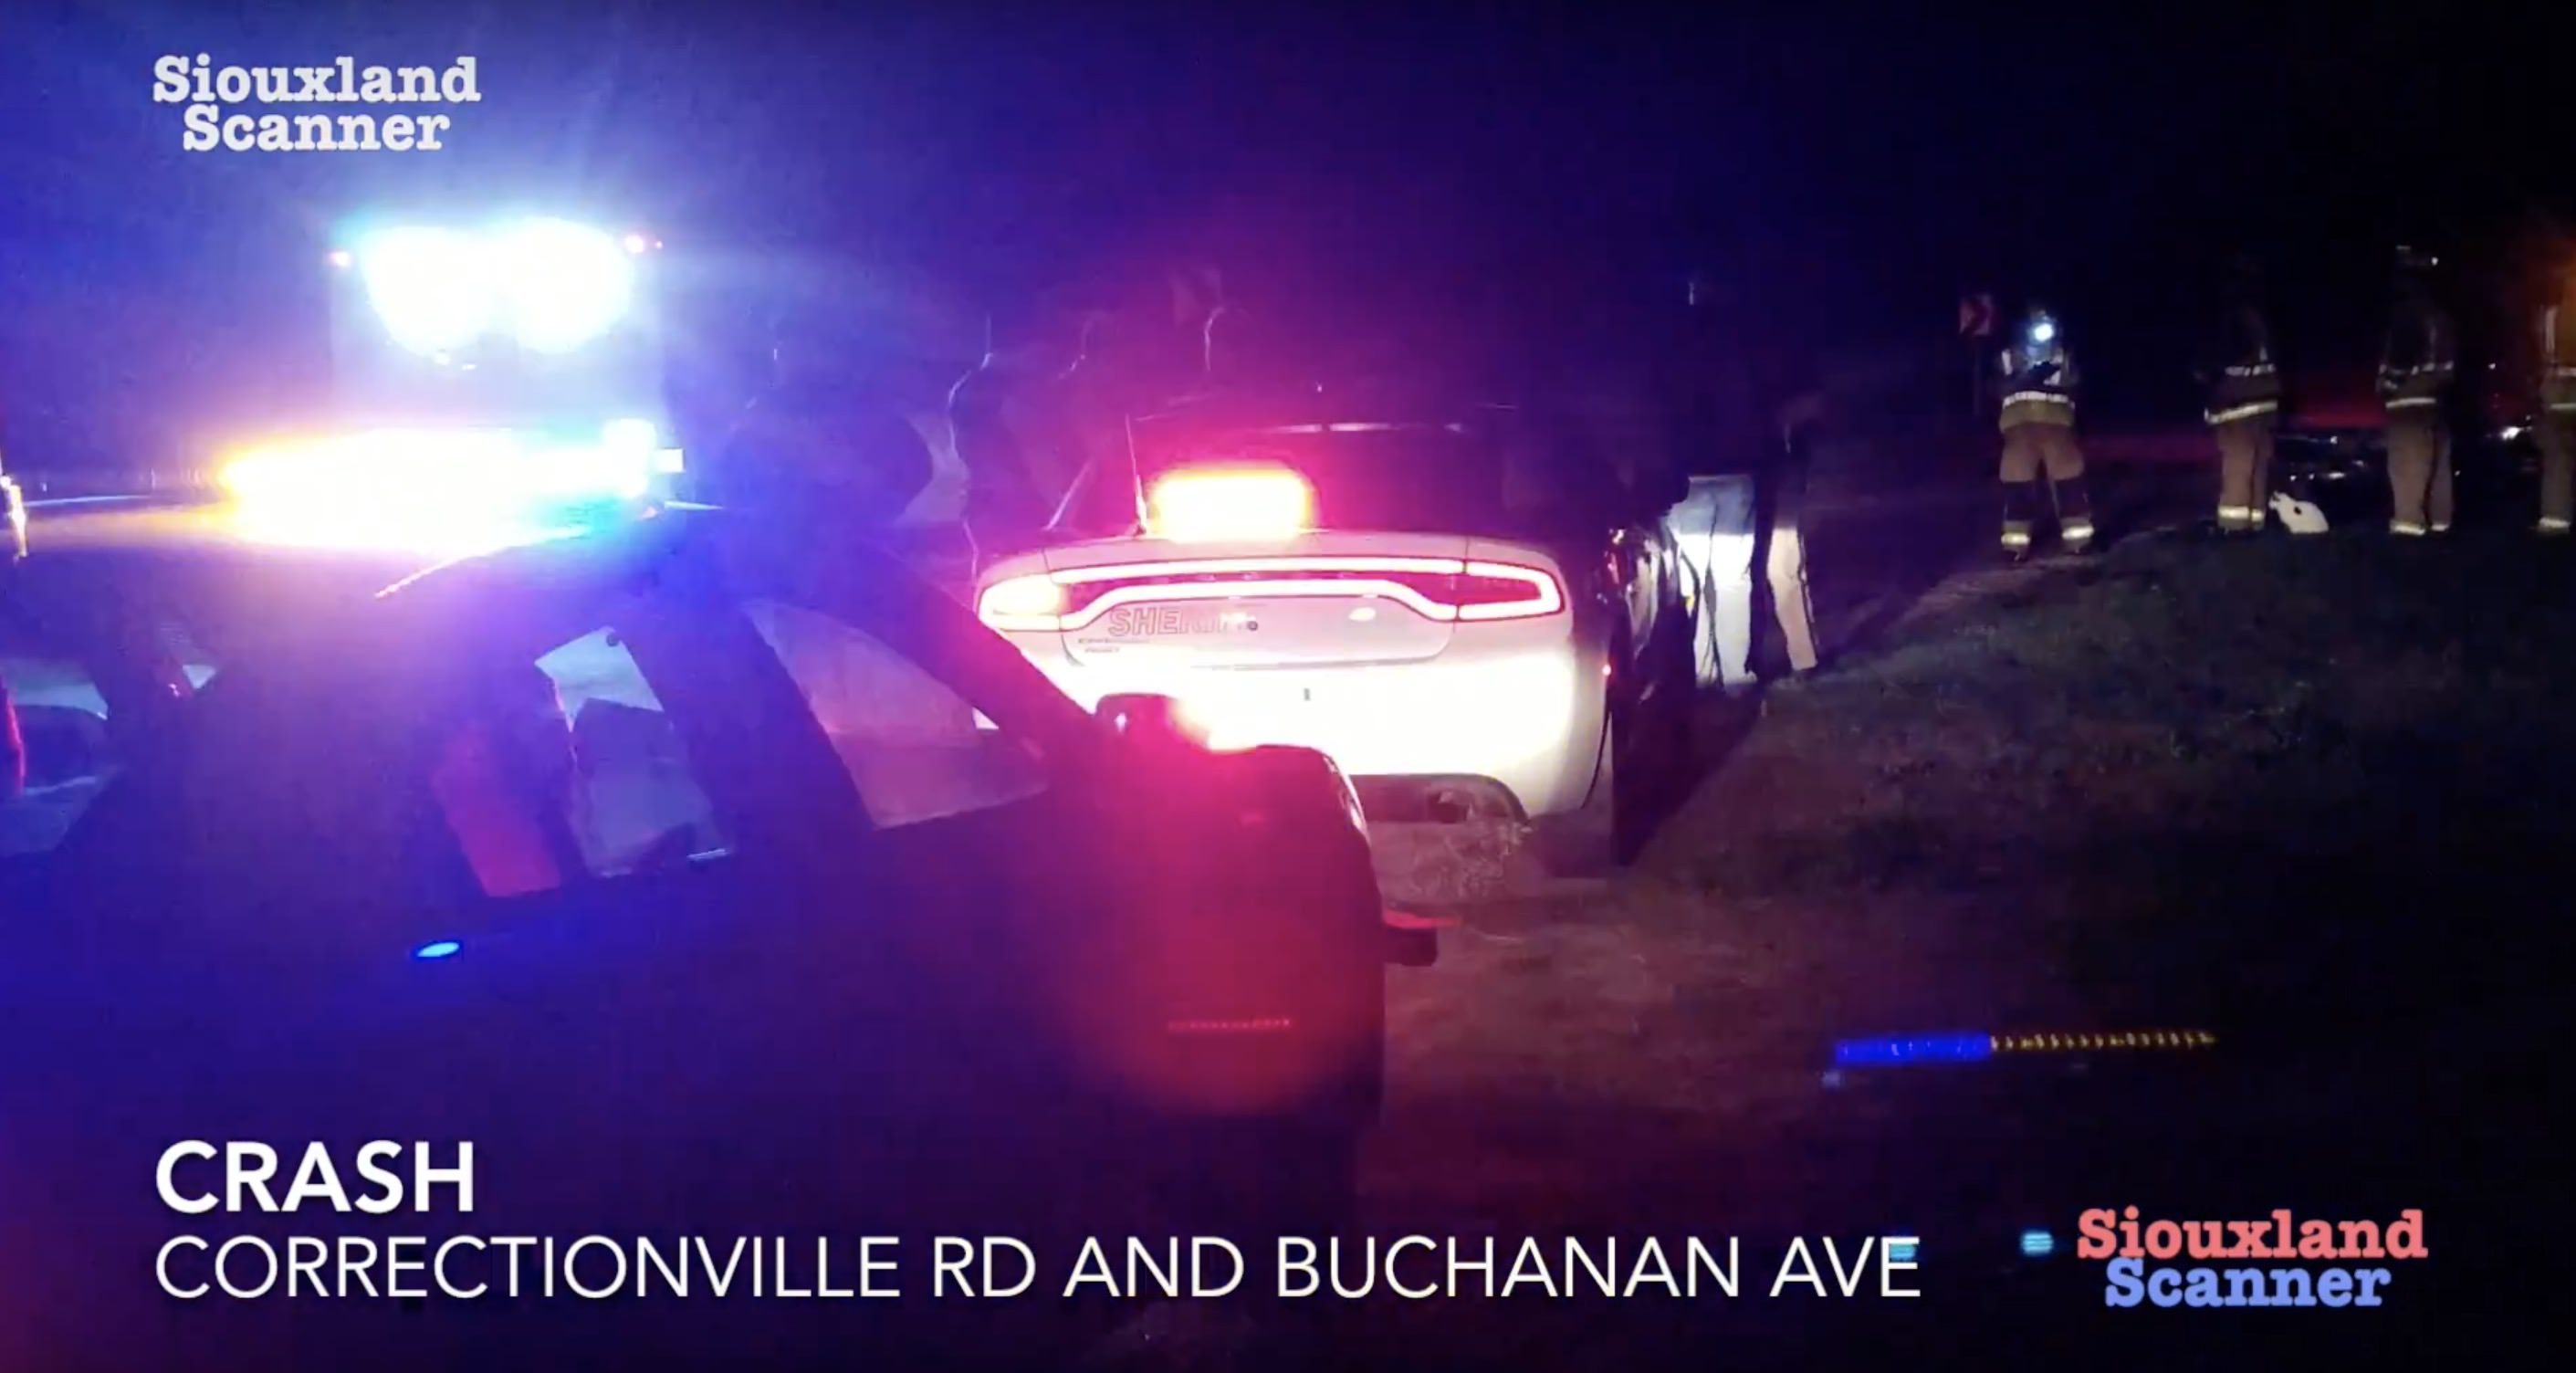 Arrest for OWI after crash at Correctionville Rd and Buchanan Ave